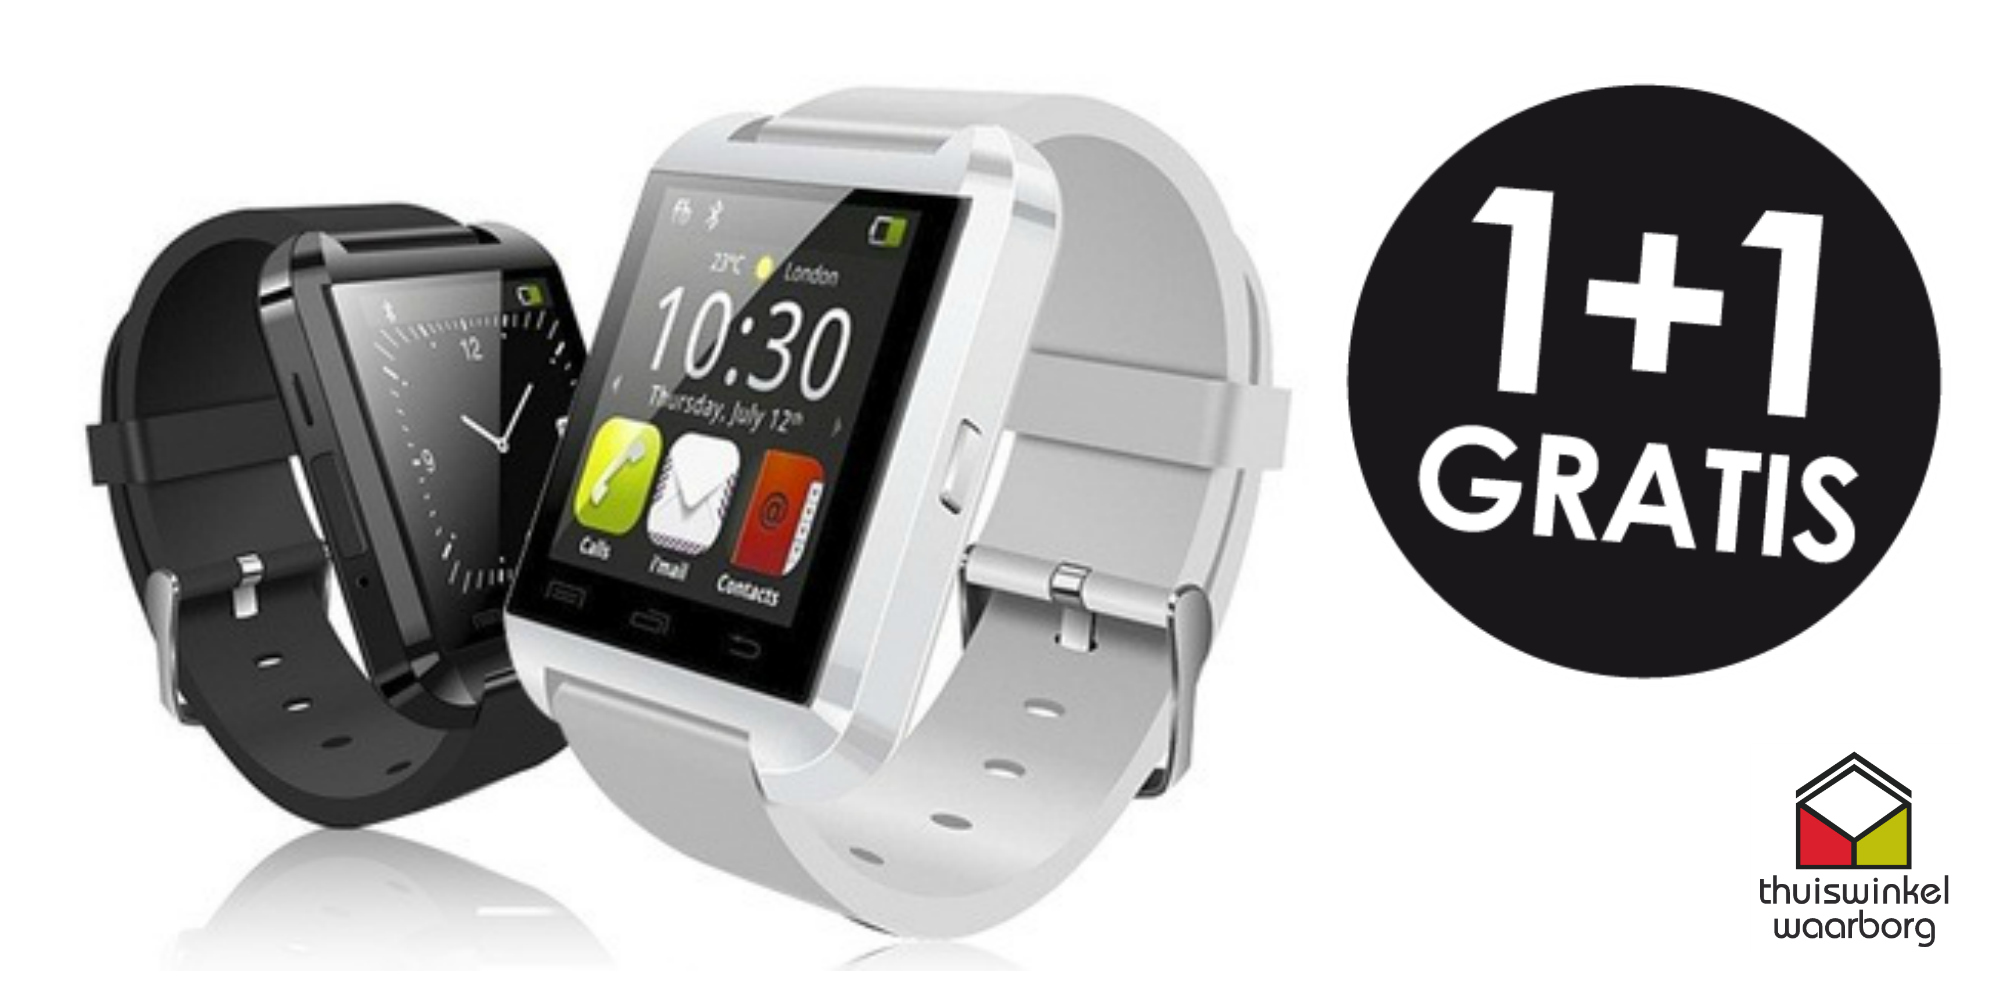 Seal de Deal - SMARTWATCH OP=OP DEAL!